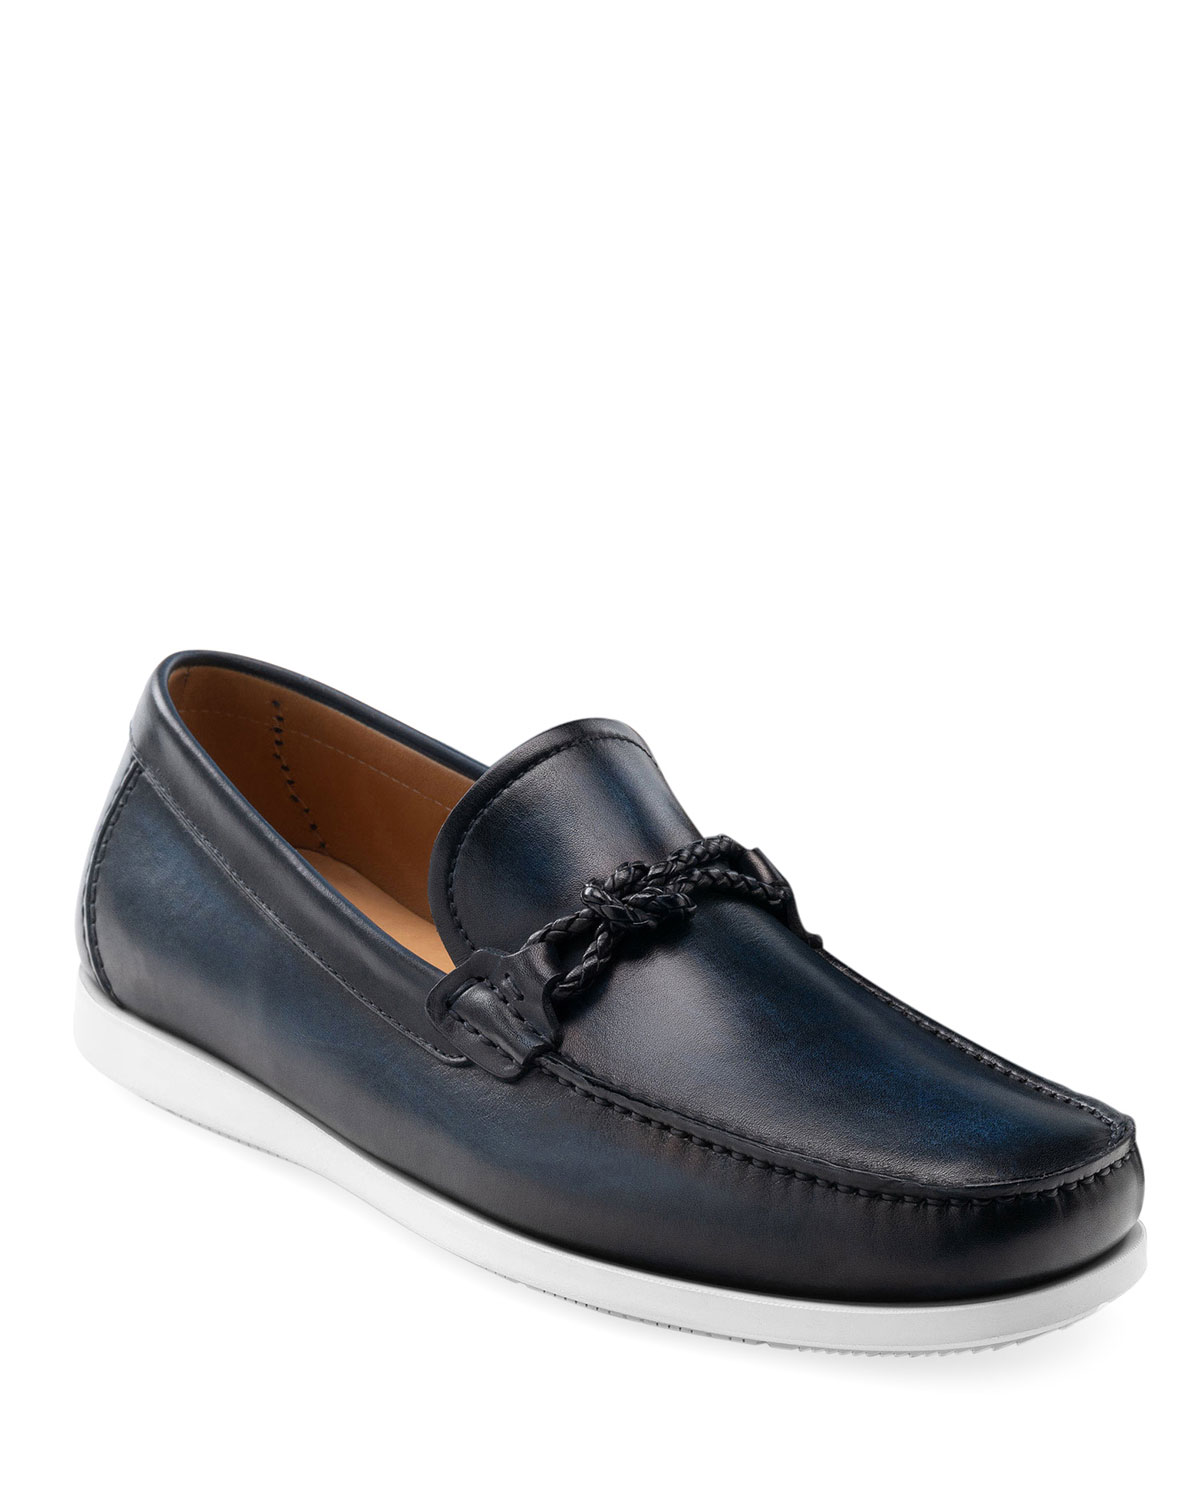 Men's Alarico Leather Loafer Sneakers